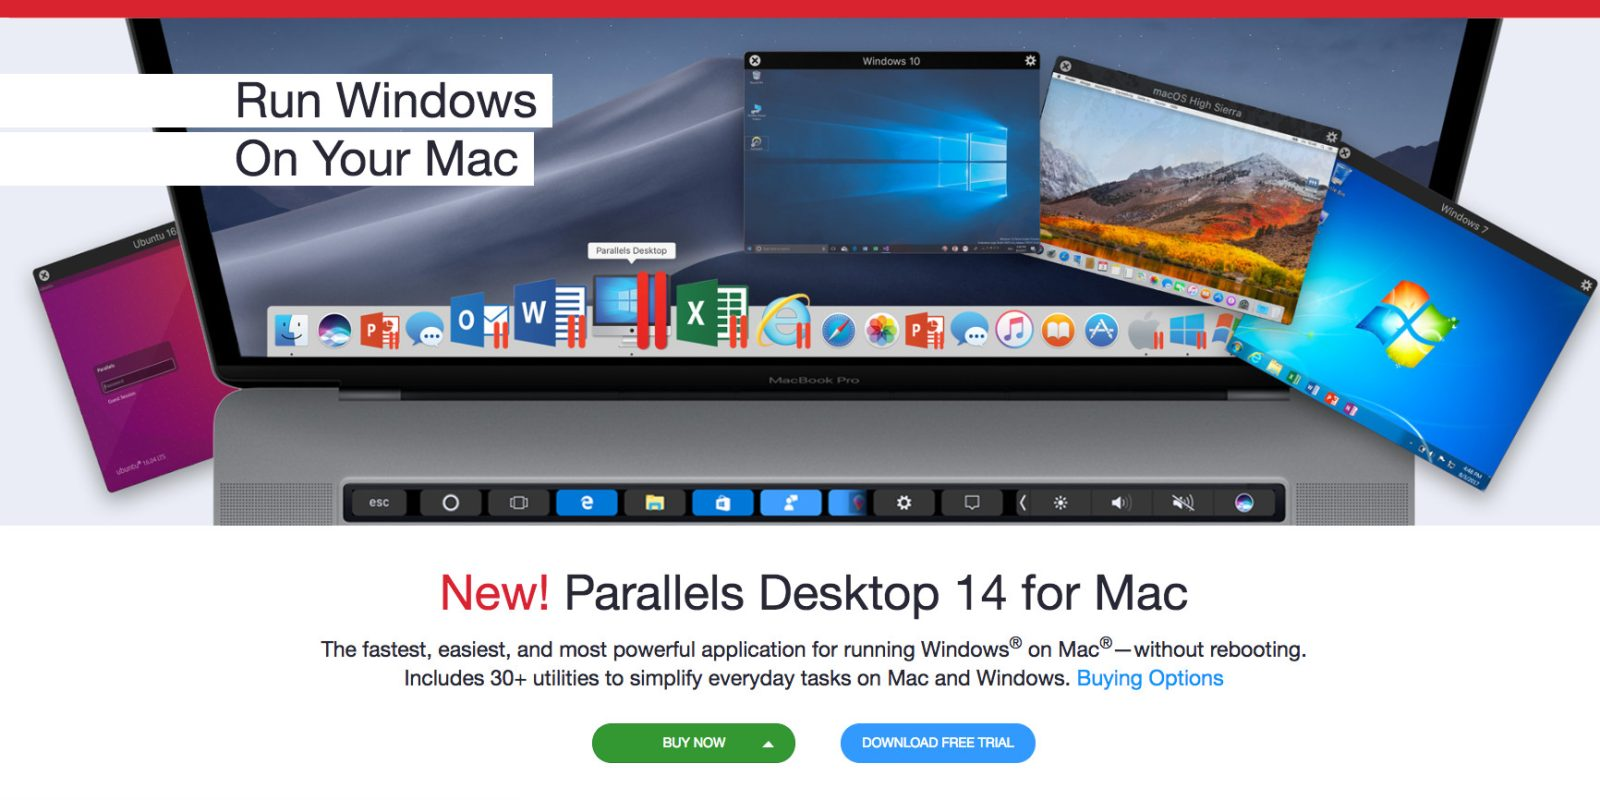 Run Windows on your Mac with Parallels, now 10% off perpetual